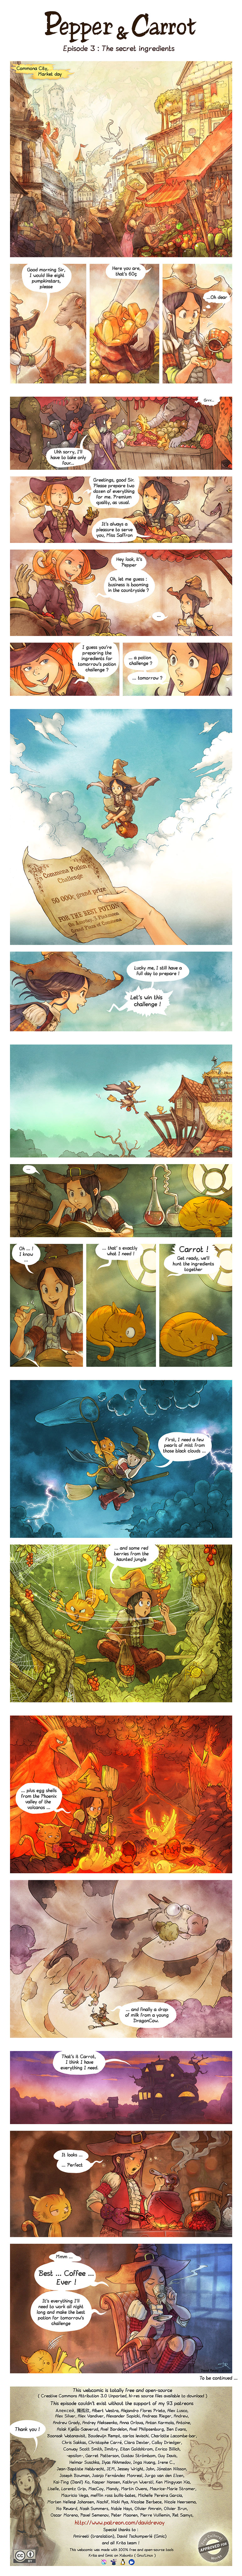 pepper_and_carrot-ep3-the_secret_ingredients